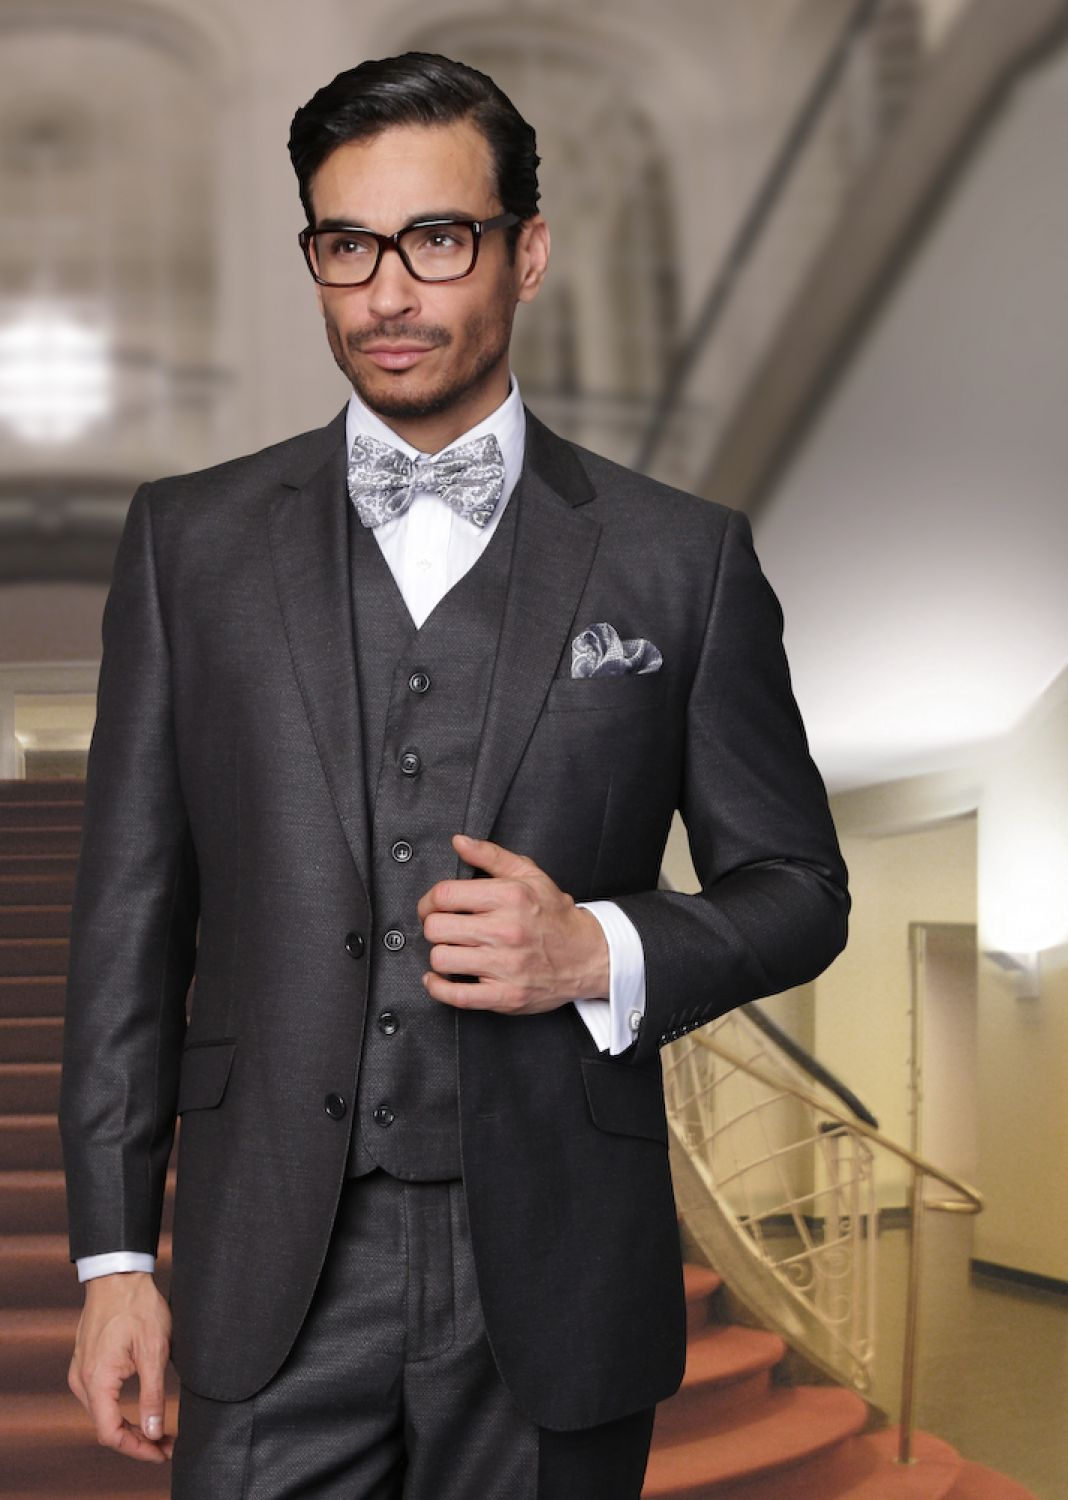 charcoal suit wedding - Google Search | Groom Attire | Pinterest ...